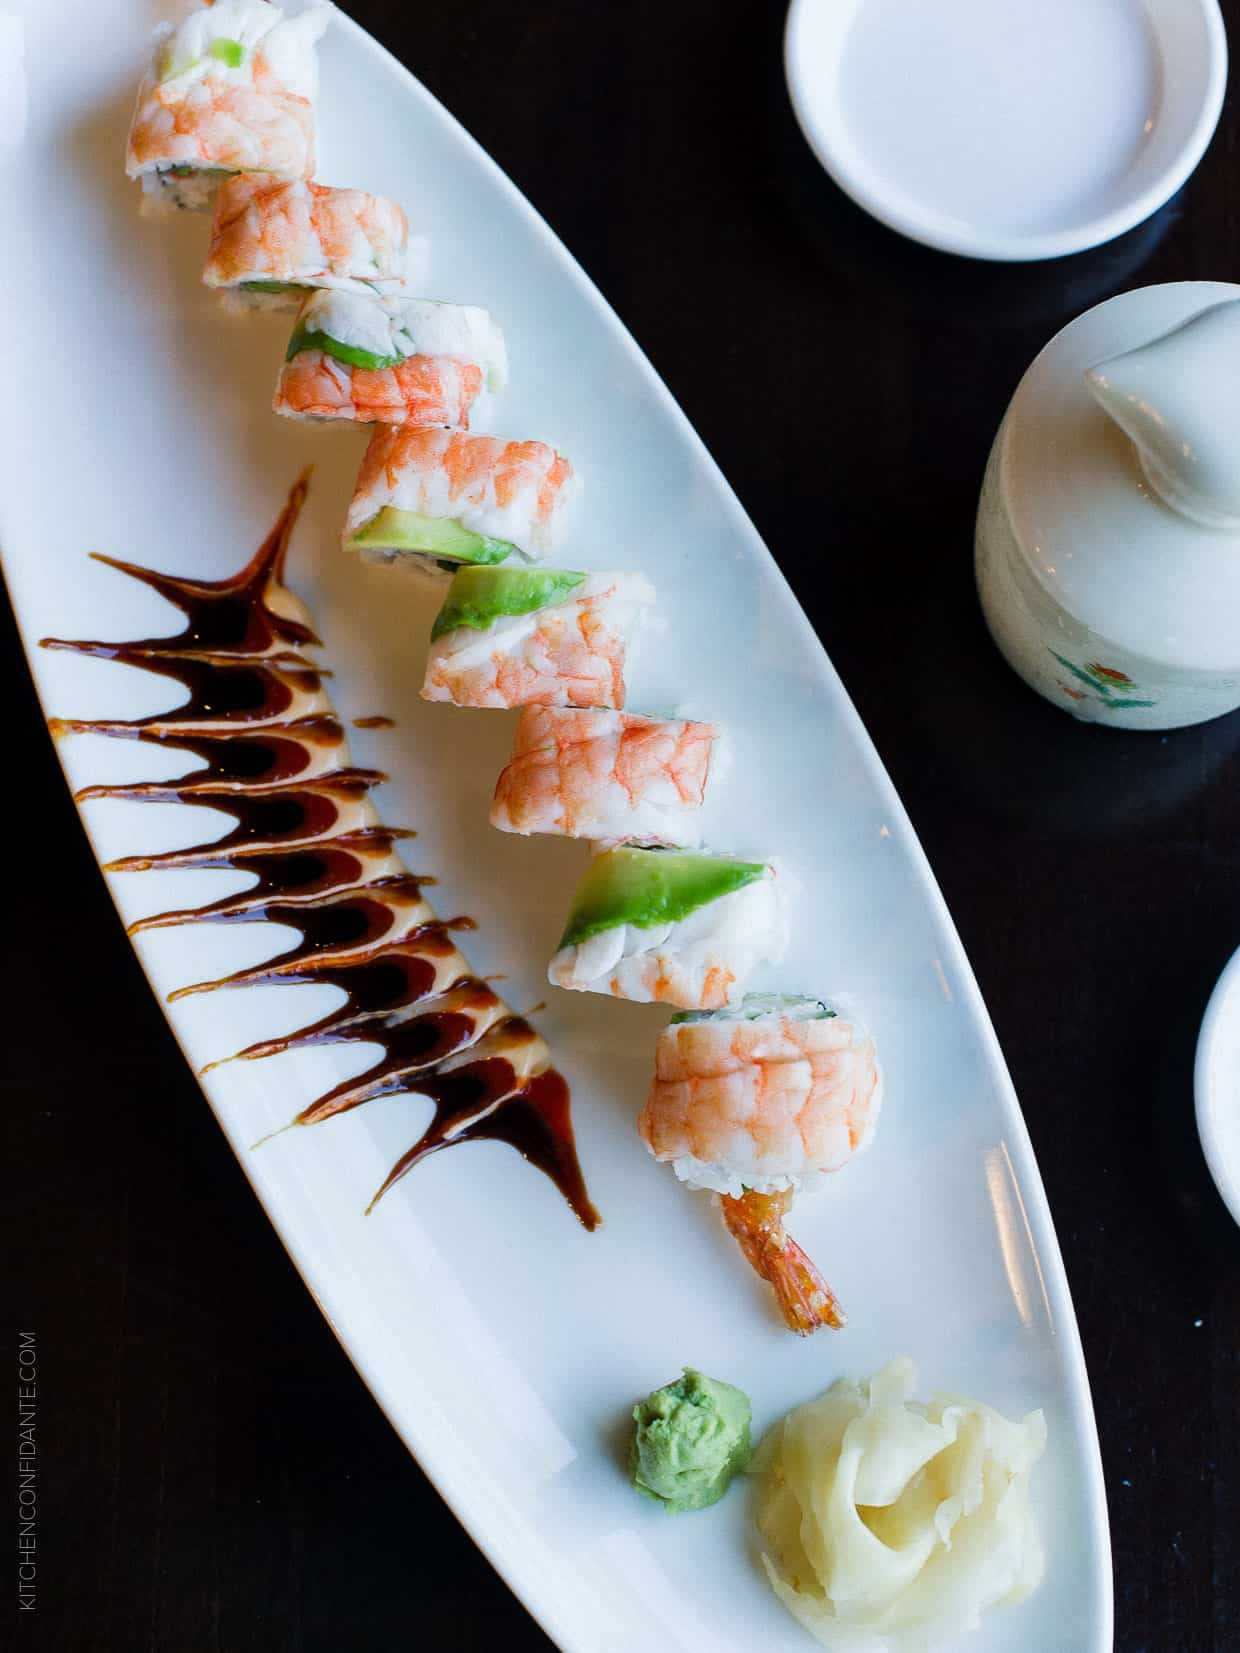 Shrimp Lovers Roll - find out what sake pairs well with this classic.